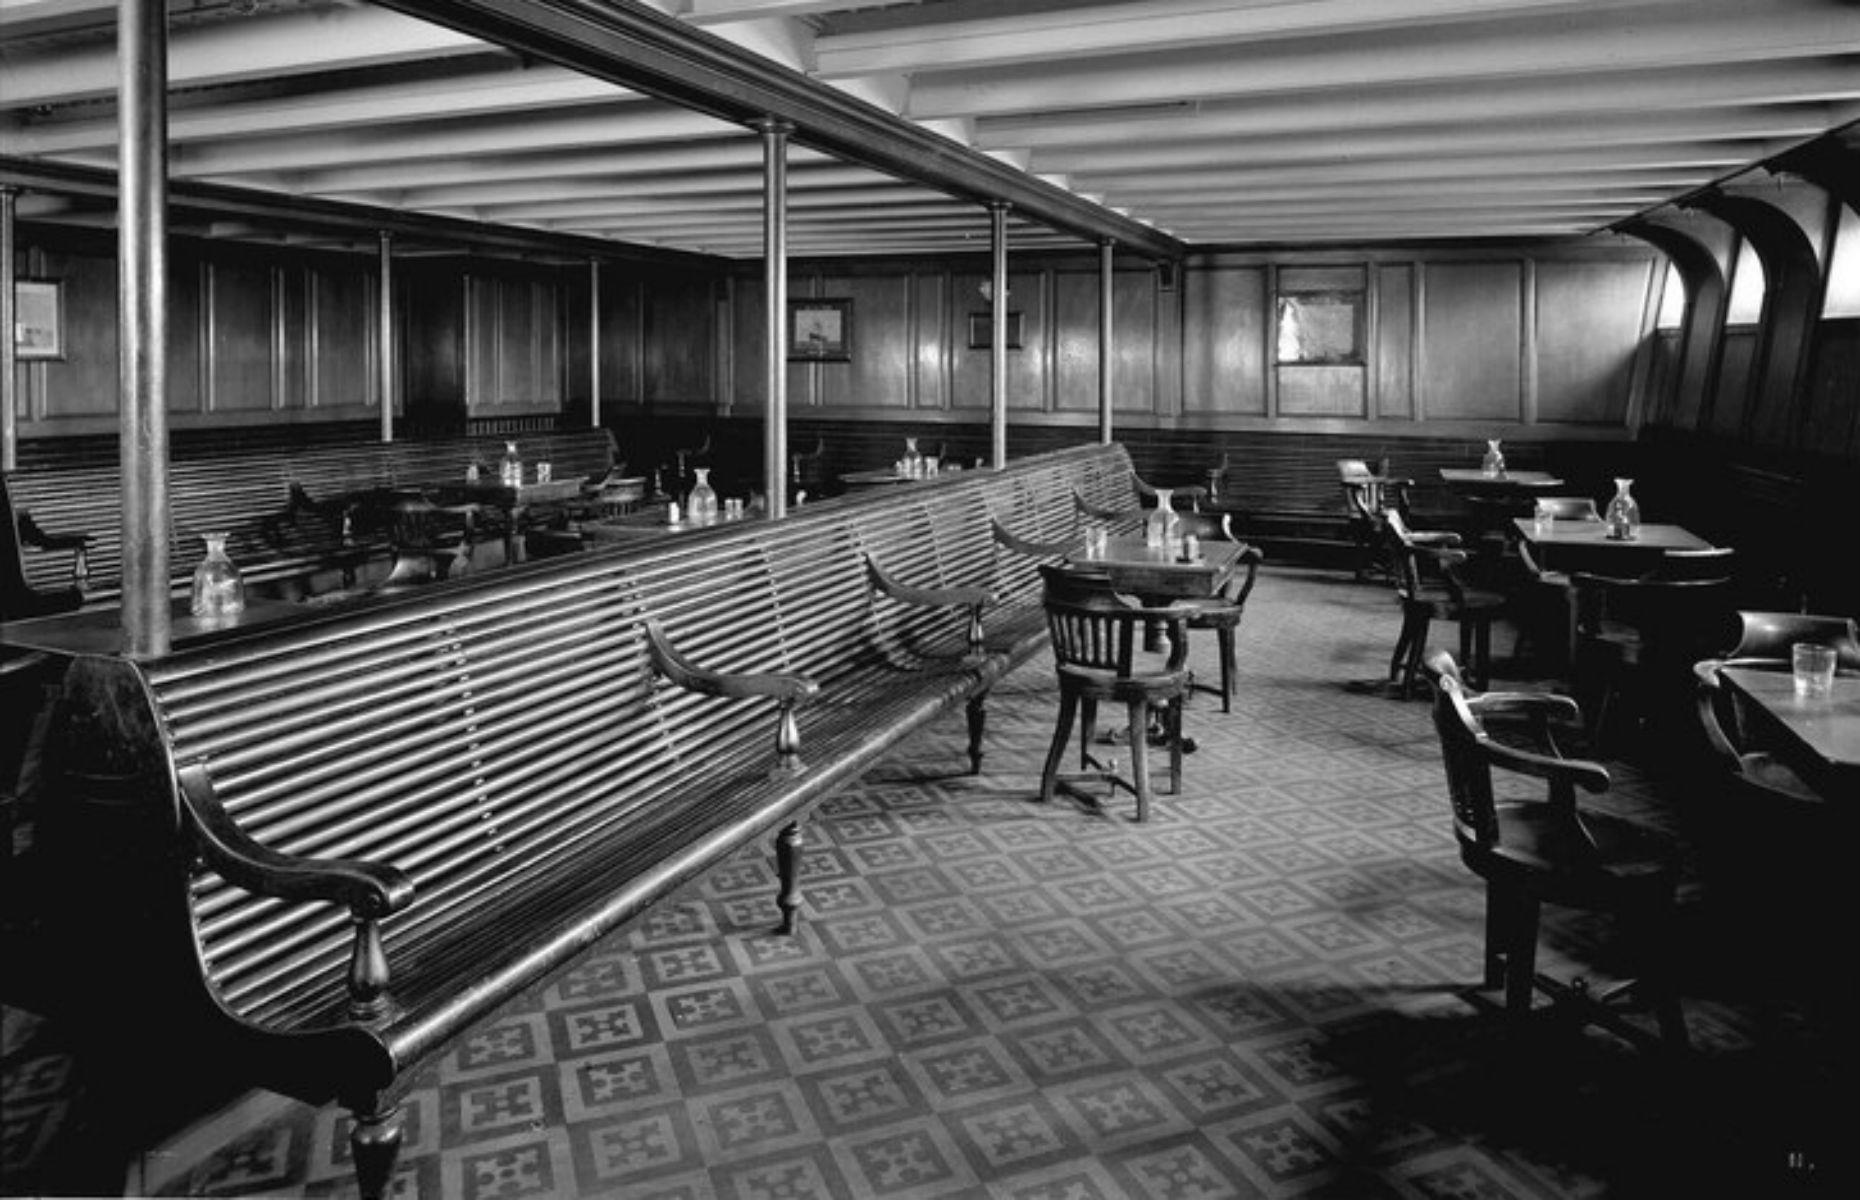 Slide 29 of 46: Third-class communal spaces had a simple, elegant feel. For example this smoking room included wooden benches and chairs, plus a tiled floor. It's likely this image is from the Olympic.